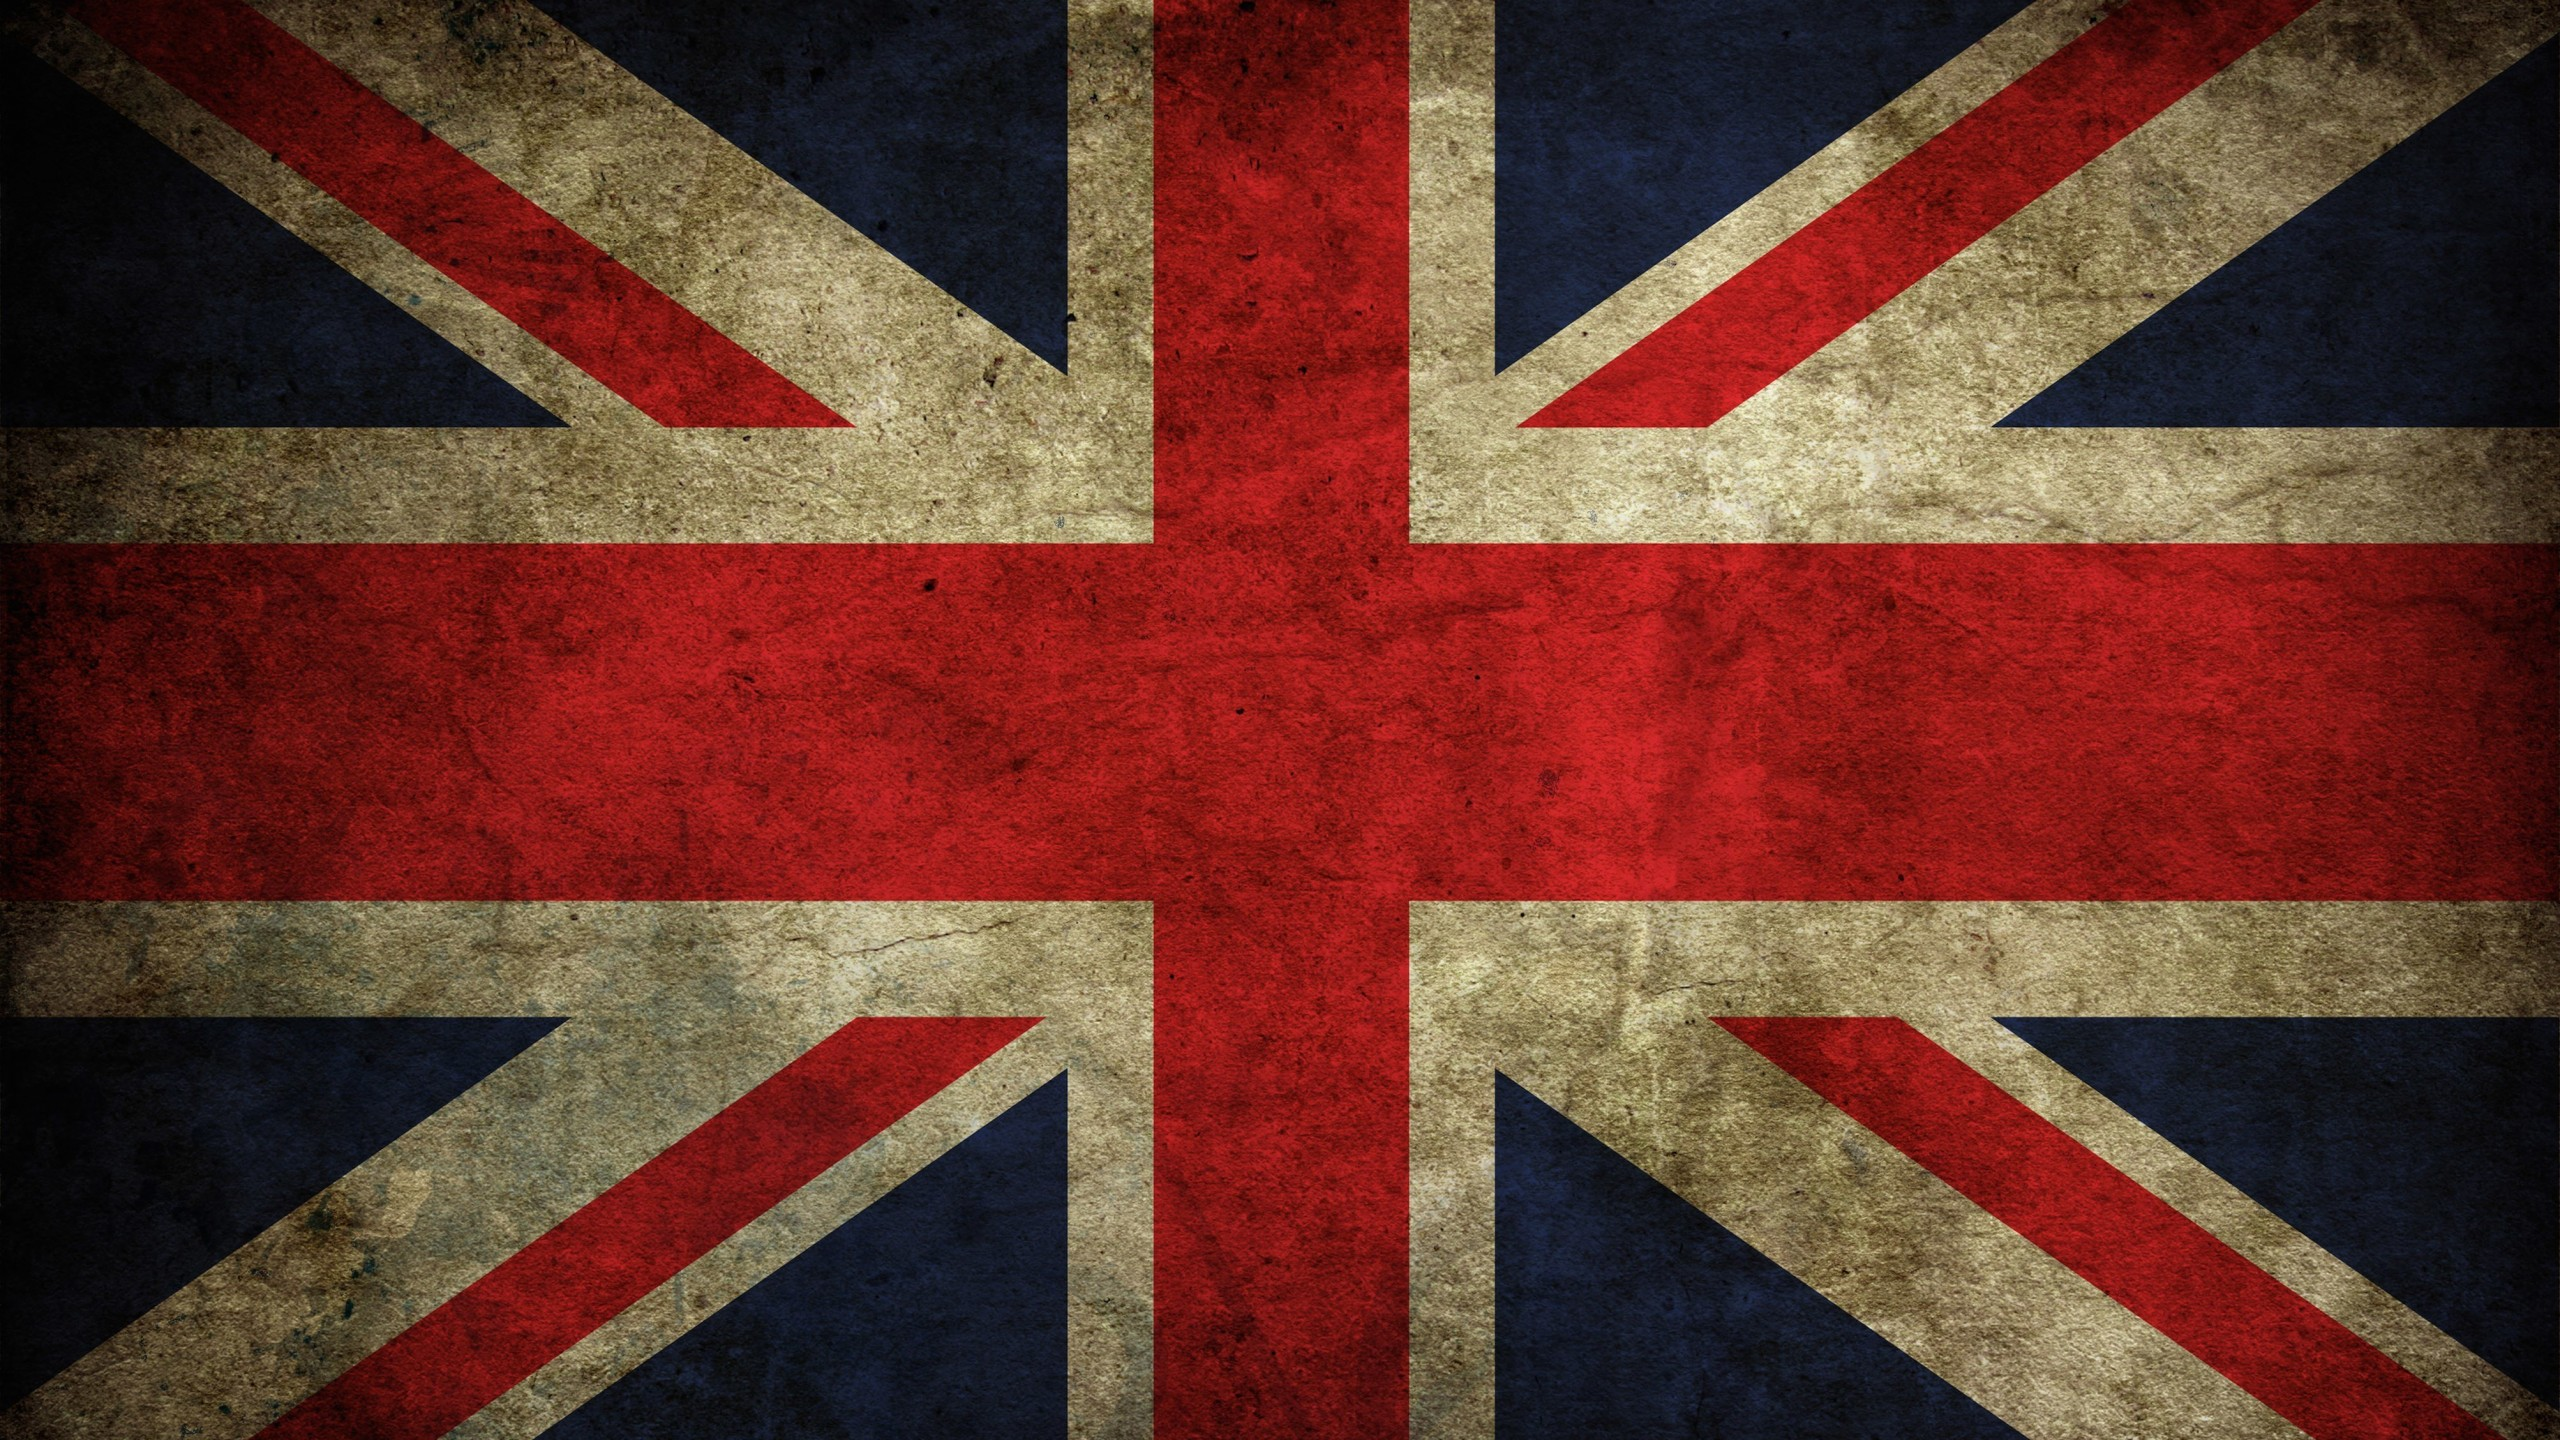 Grunge Flag Of The United Kingdom Wallpaper for Desktop 2560x1440